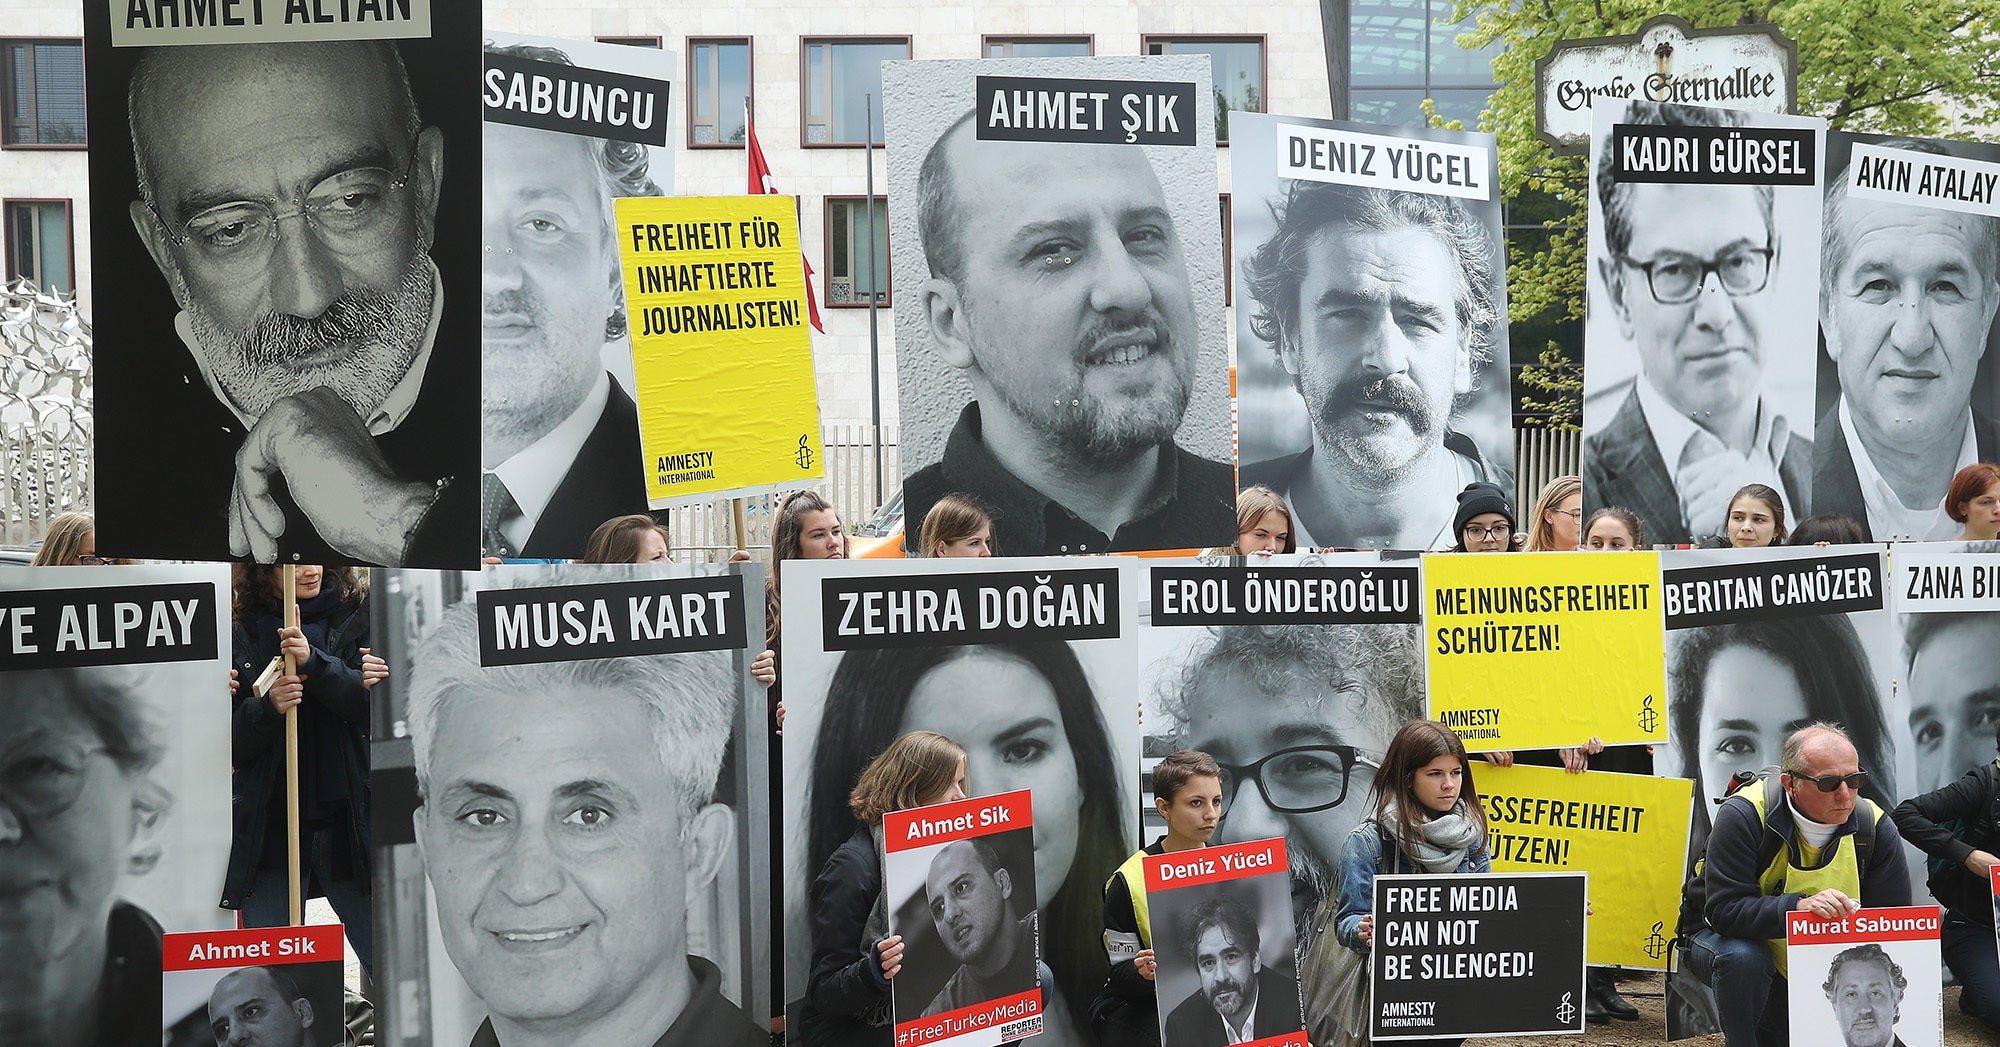 Turkey Is Engaging In Hostage Diplomacy With The US, Officials Say